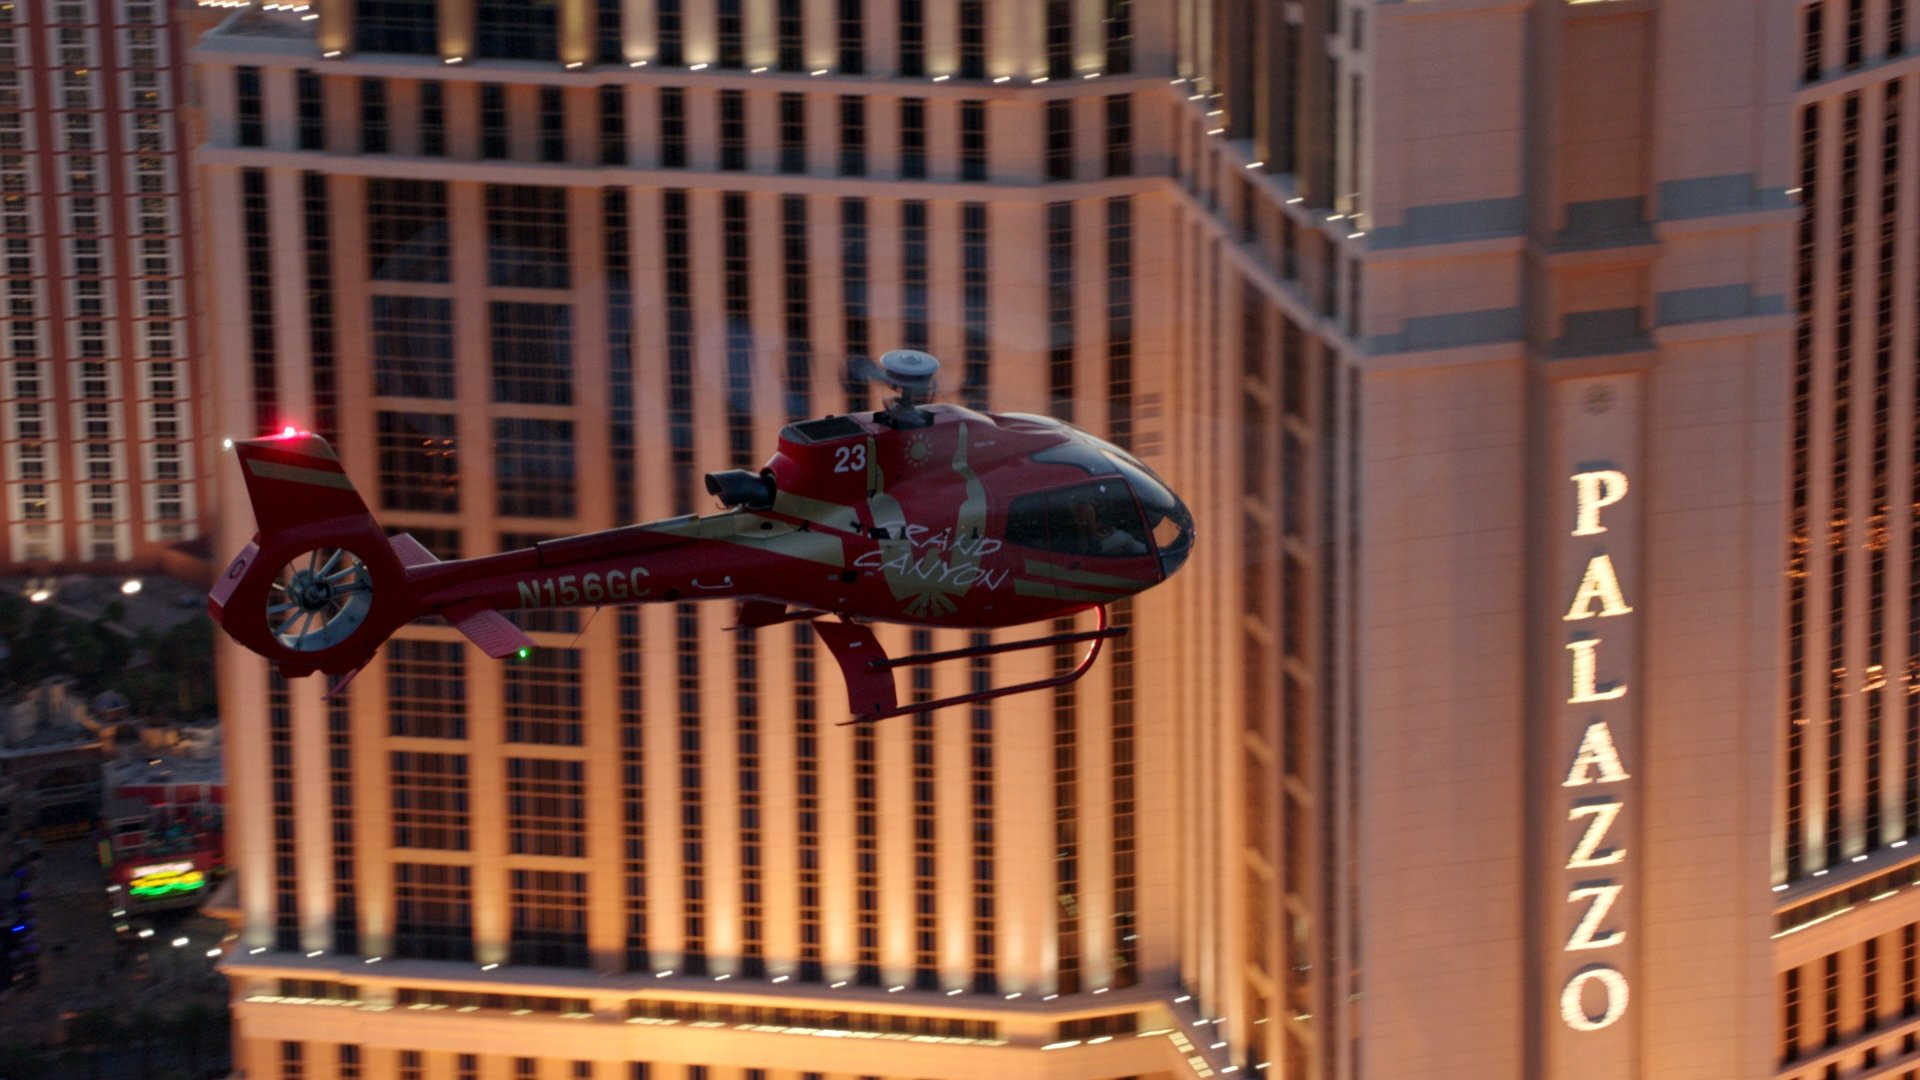 An EC-130 helicopter flying over the Las Vegas Strip with the Palazzo hotel in the background.